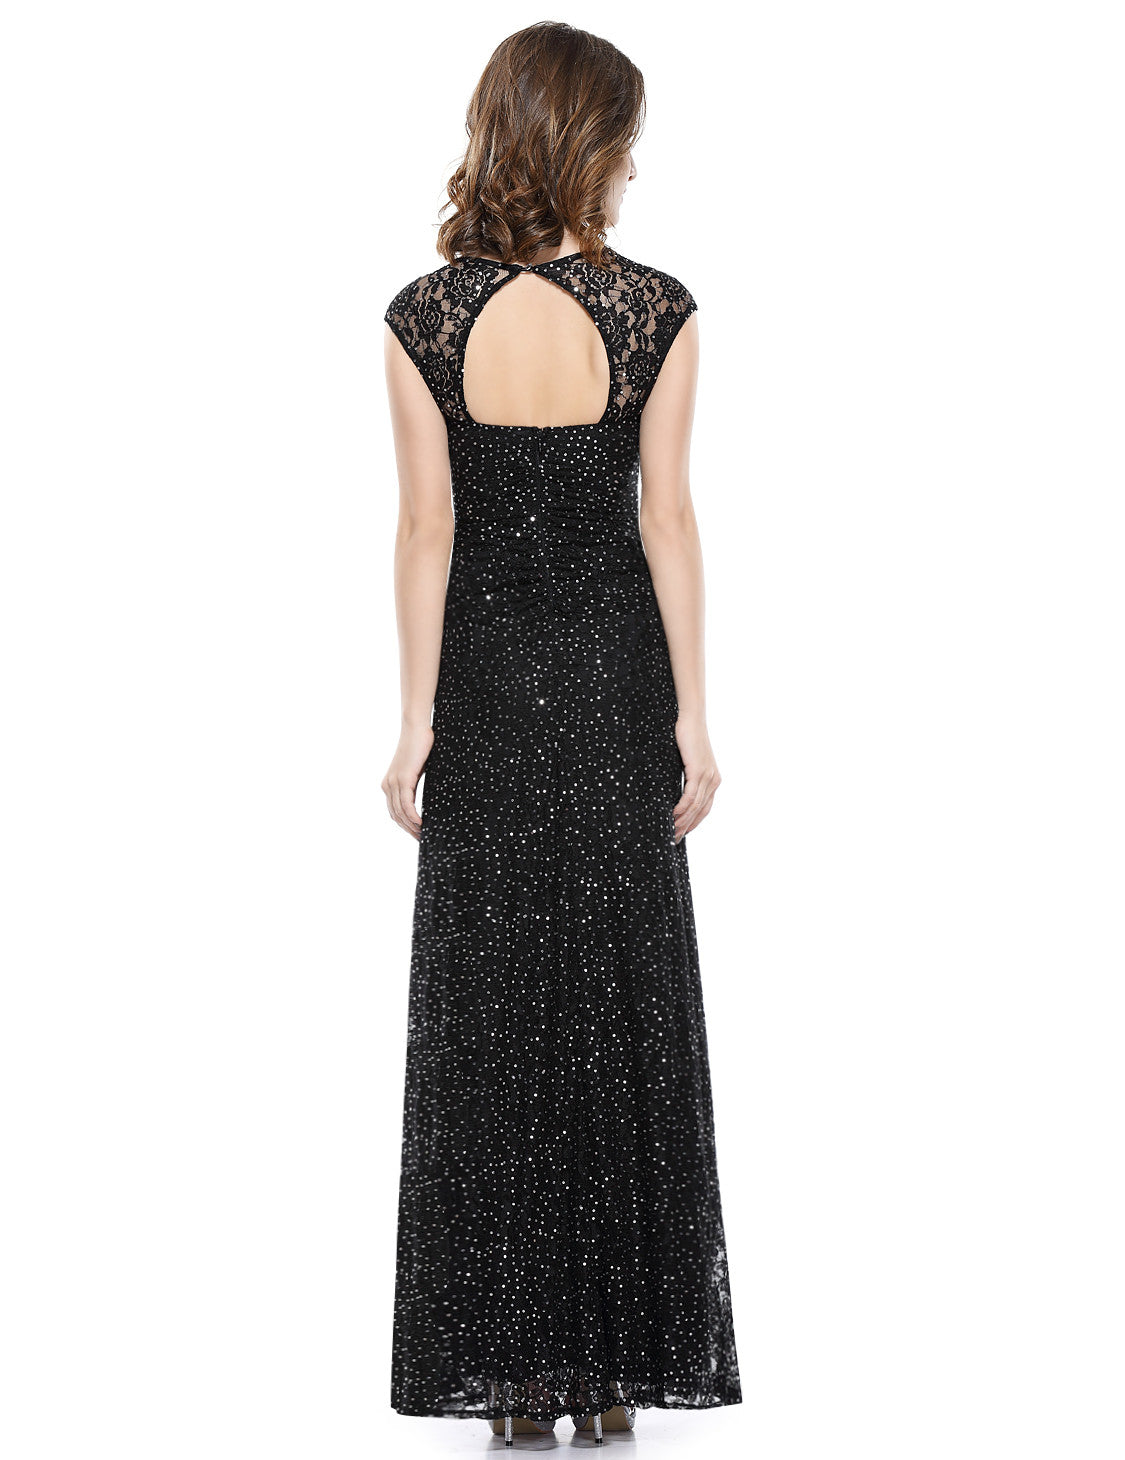 Black Elegant Lacy Long Evening Party Dress - O'beige